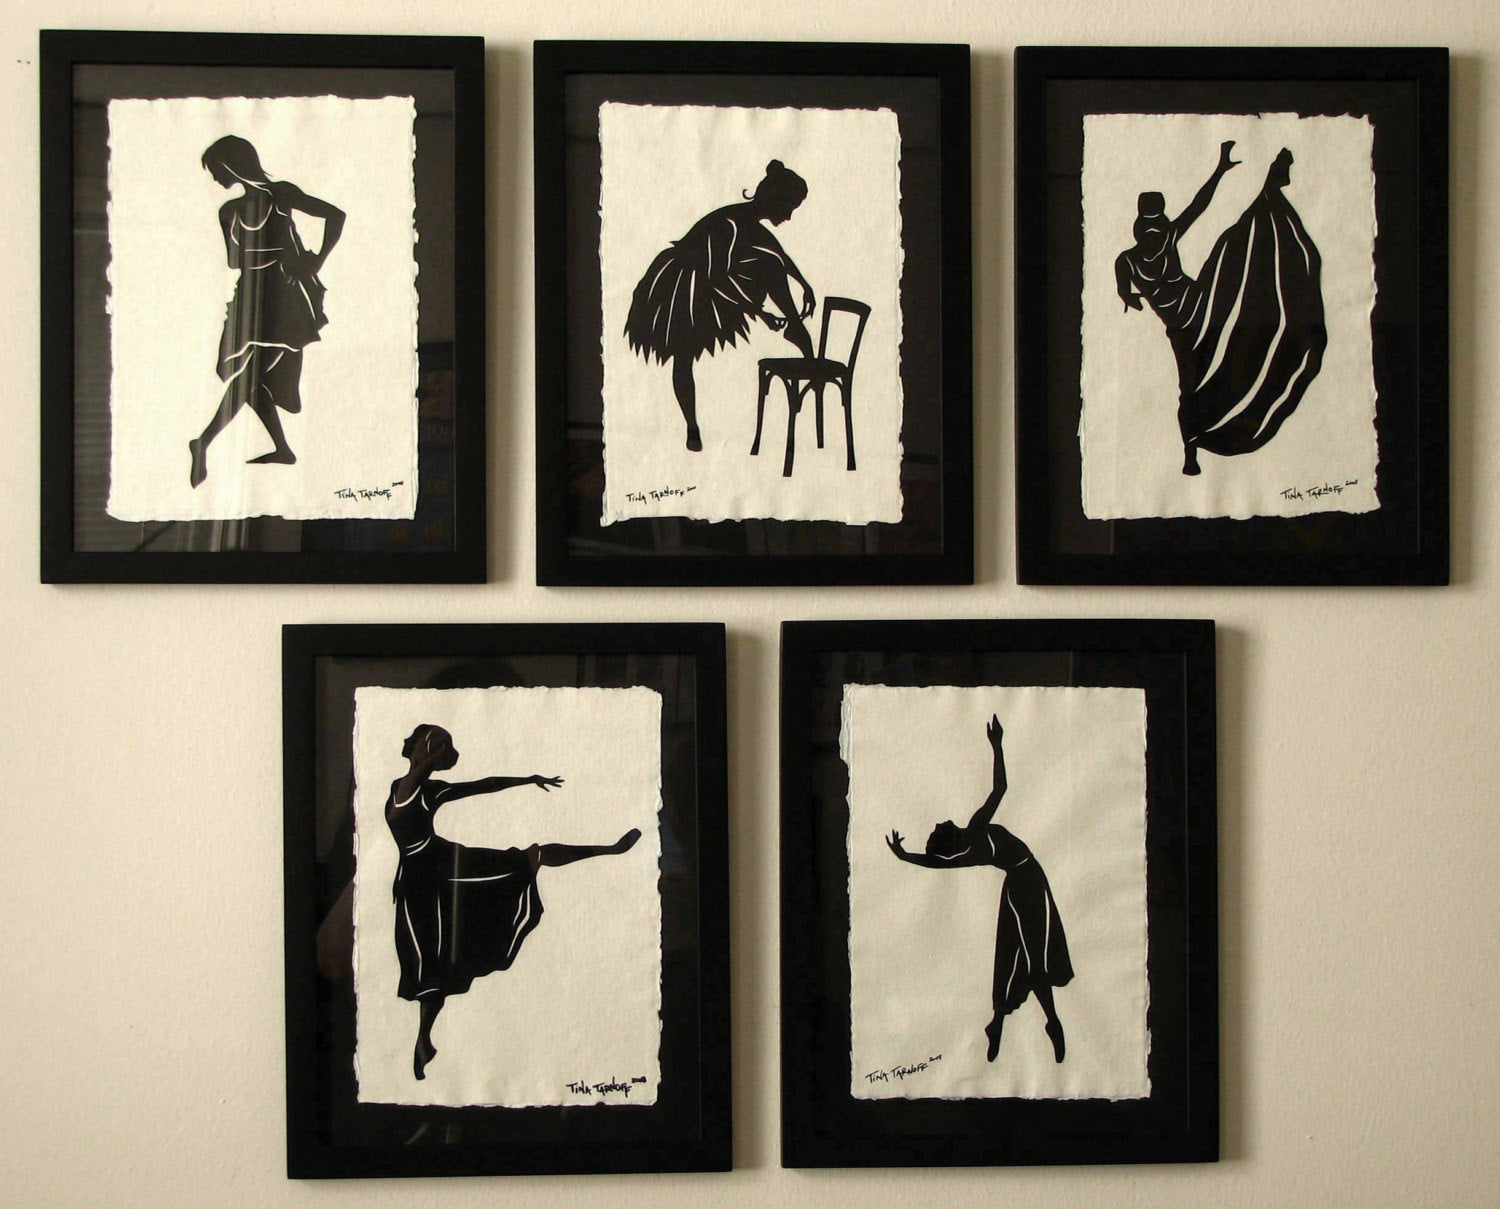 BALLET DANCERS Papercuts, 5 Hand-Cut Silhouettes, Individually Framed